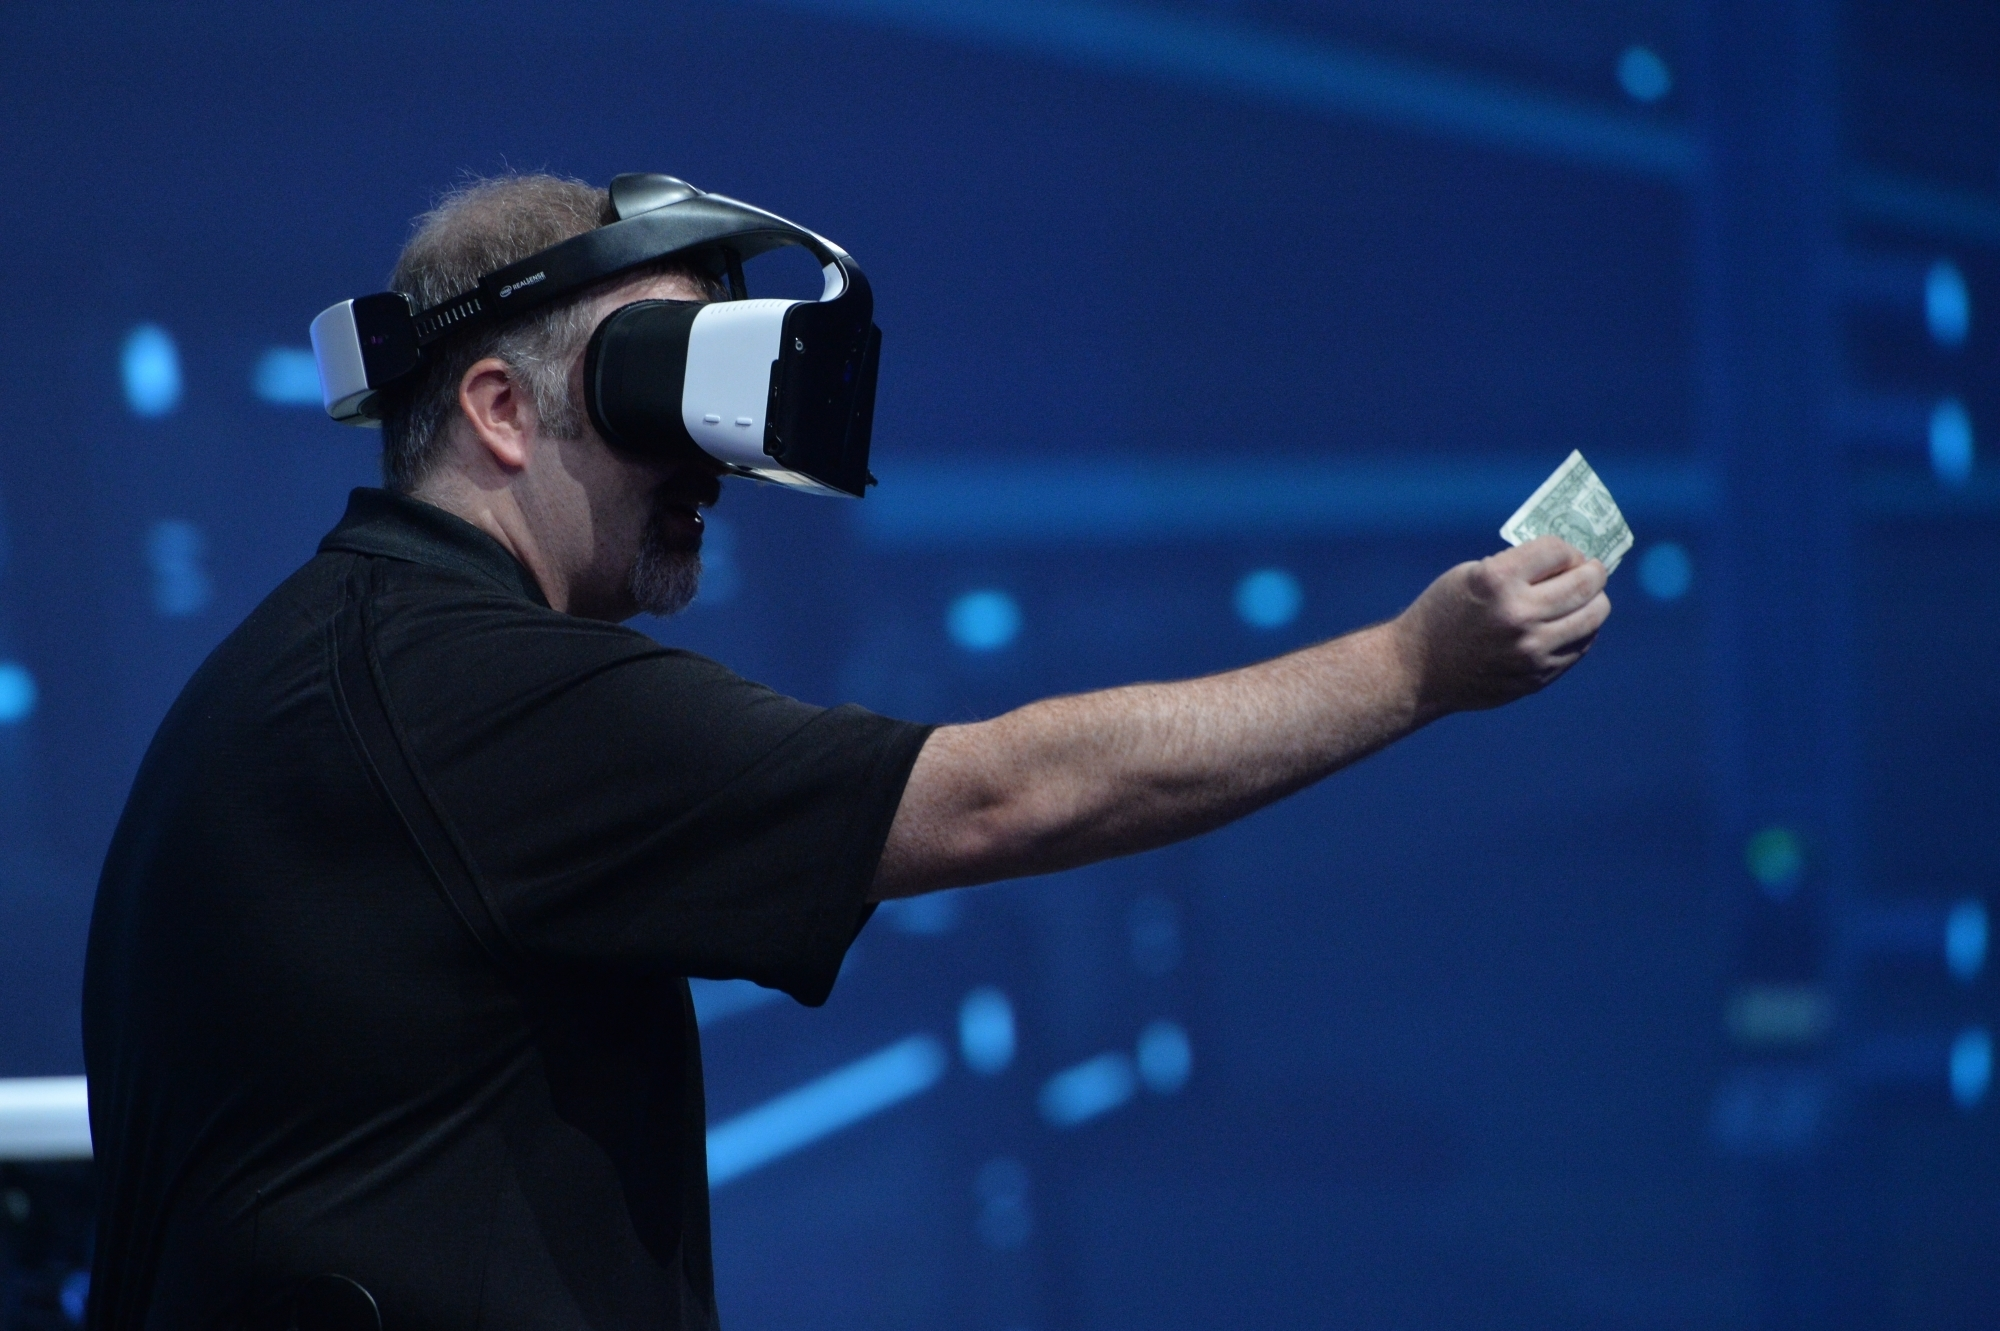 Intel Project Alloy, visore all-in-one con Realsense 3D